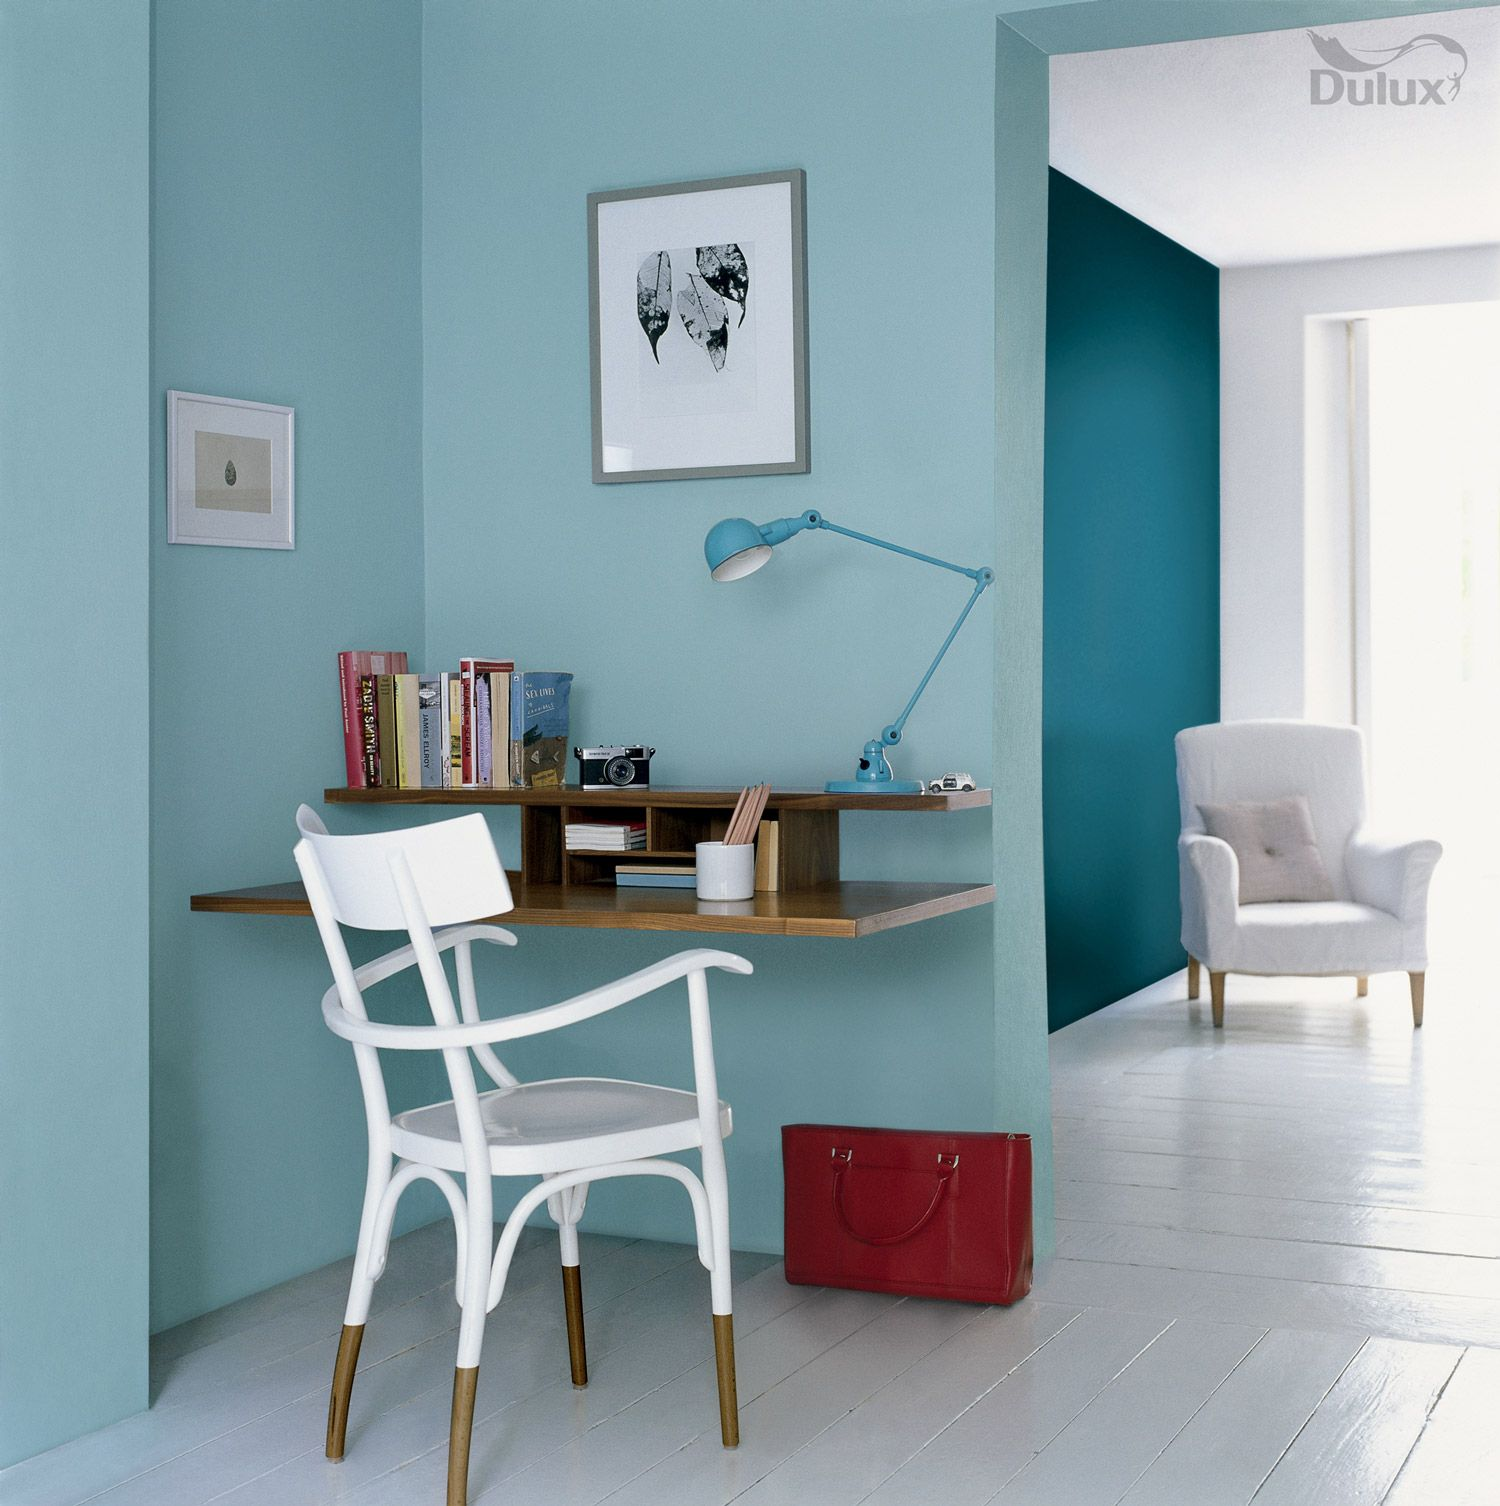 Decorating Ideas Dulux: Dulux Colour Of The Year 2014